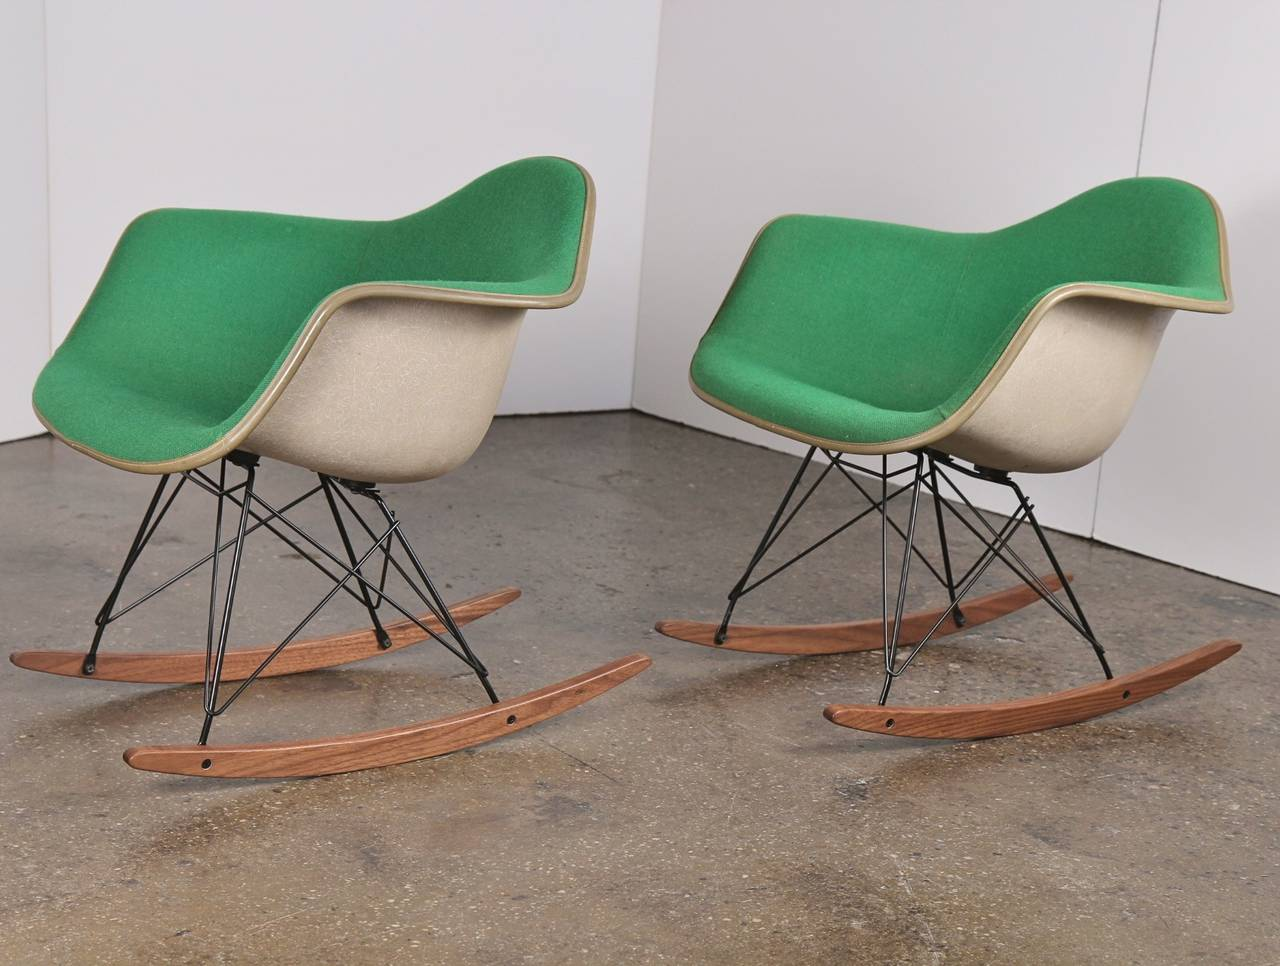 eames rocking chair green. vintage green eames upholstered rocking chair - one left 3